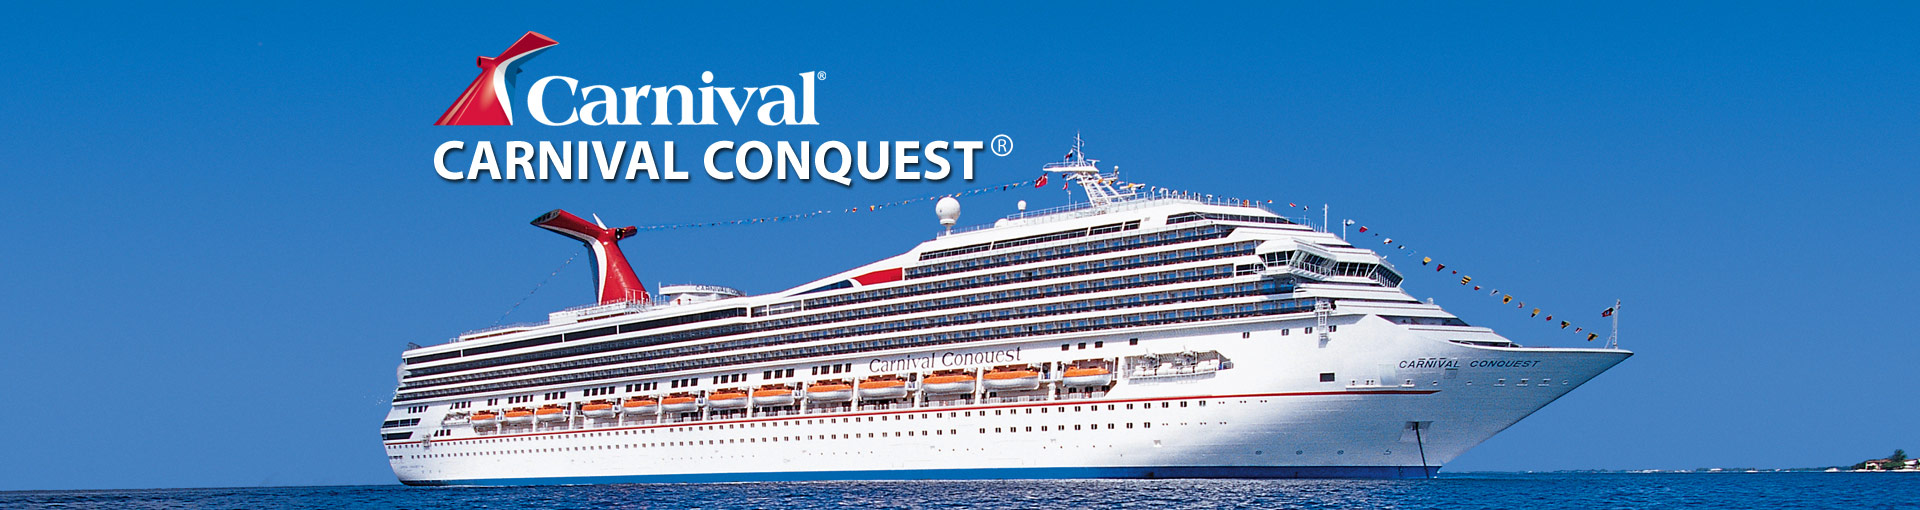 Carnival Conquest Cruise Ship 2017 And 2018 Carnival